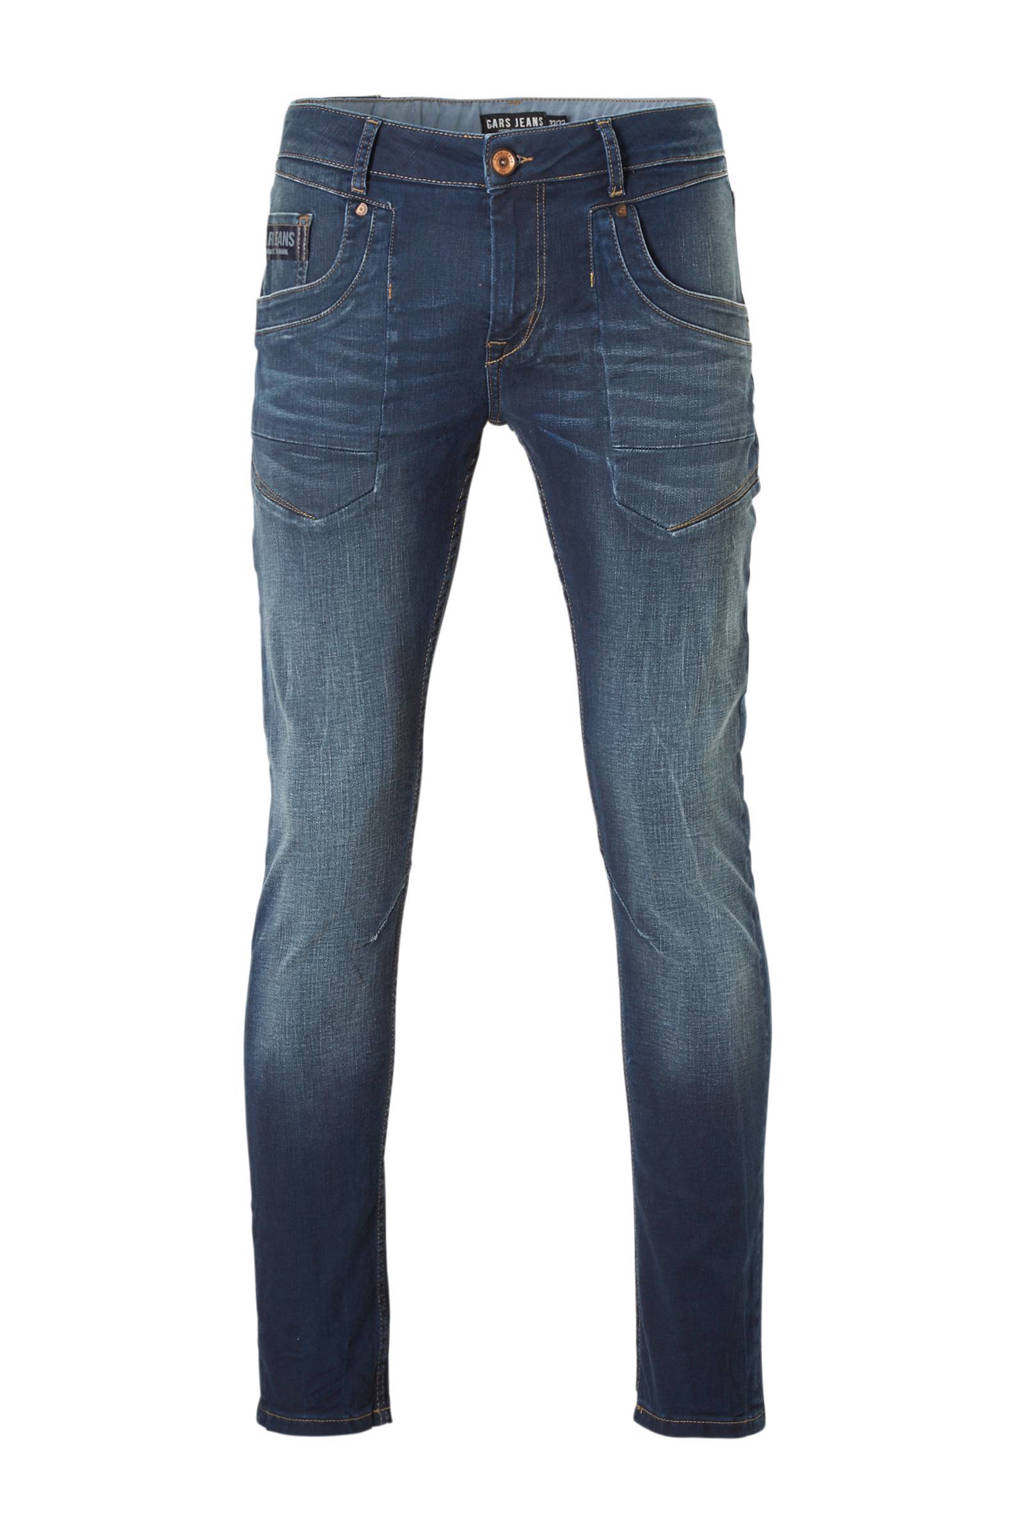 Cars slim fit jeans Stockton, Blue coated